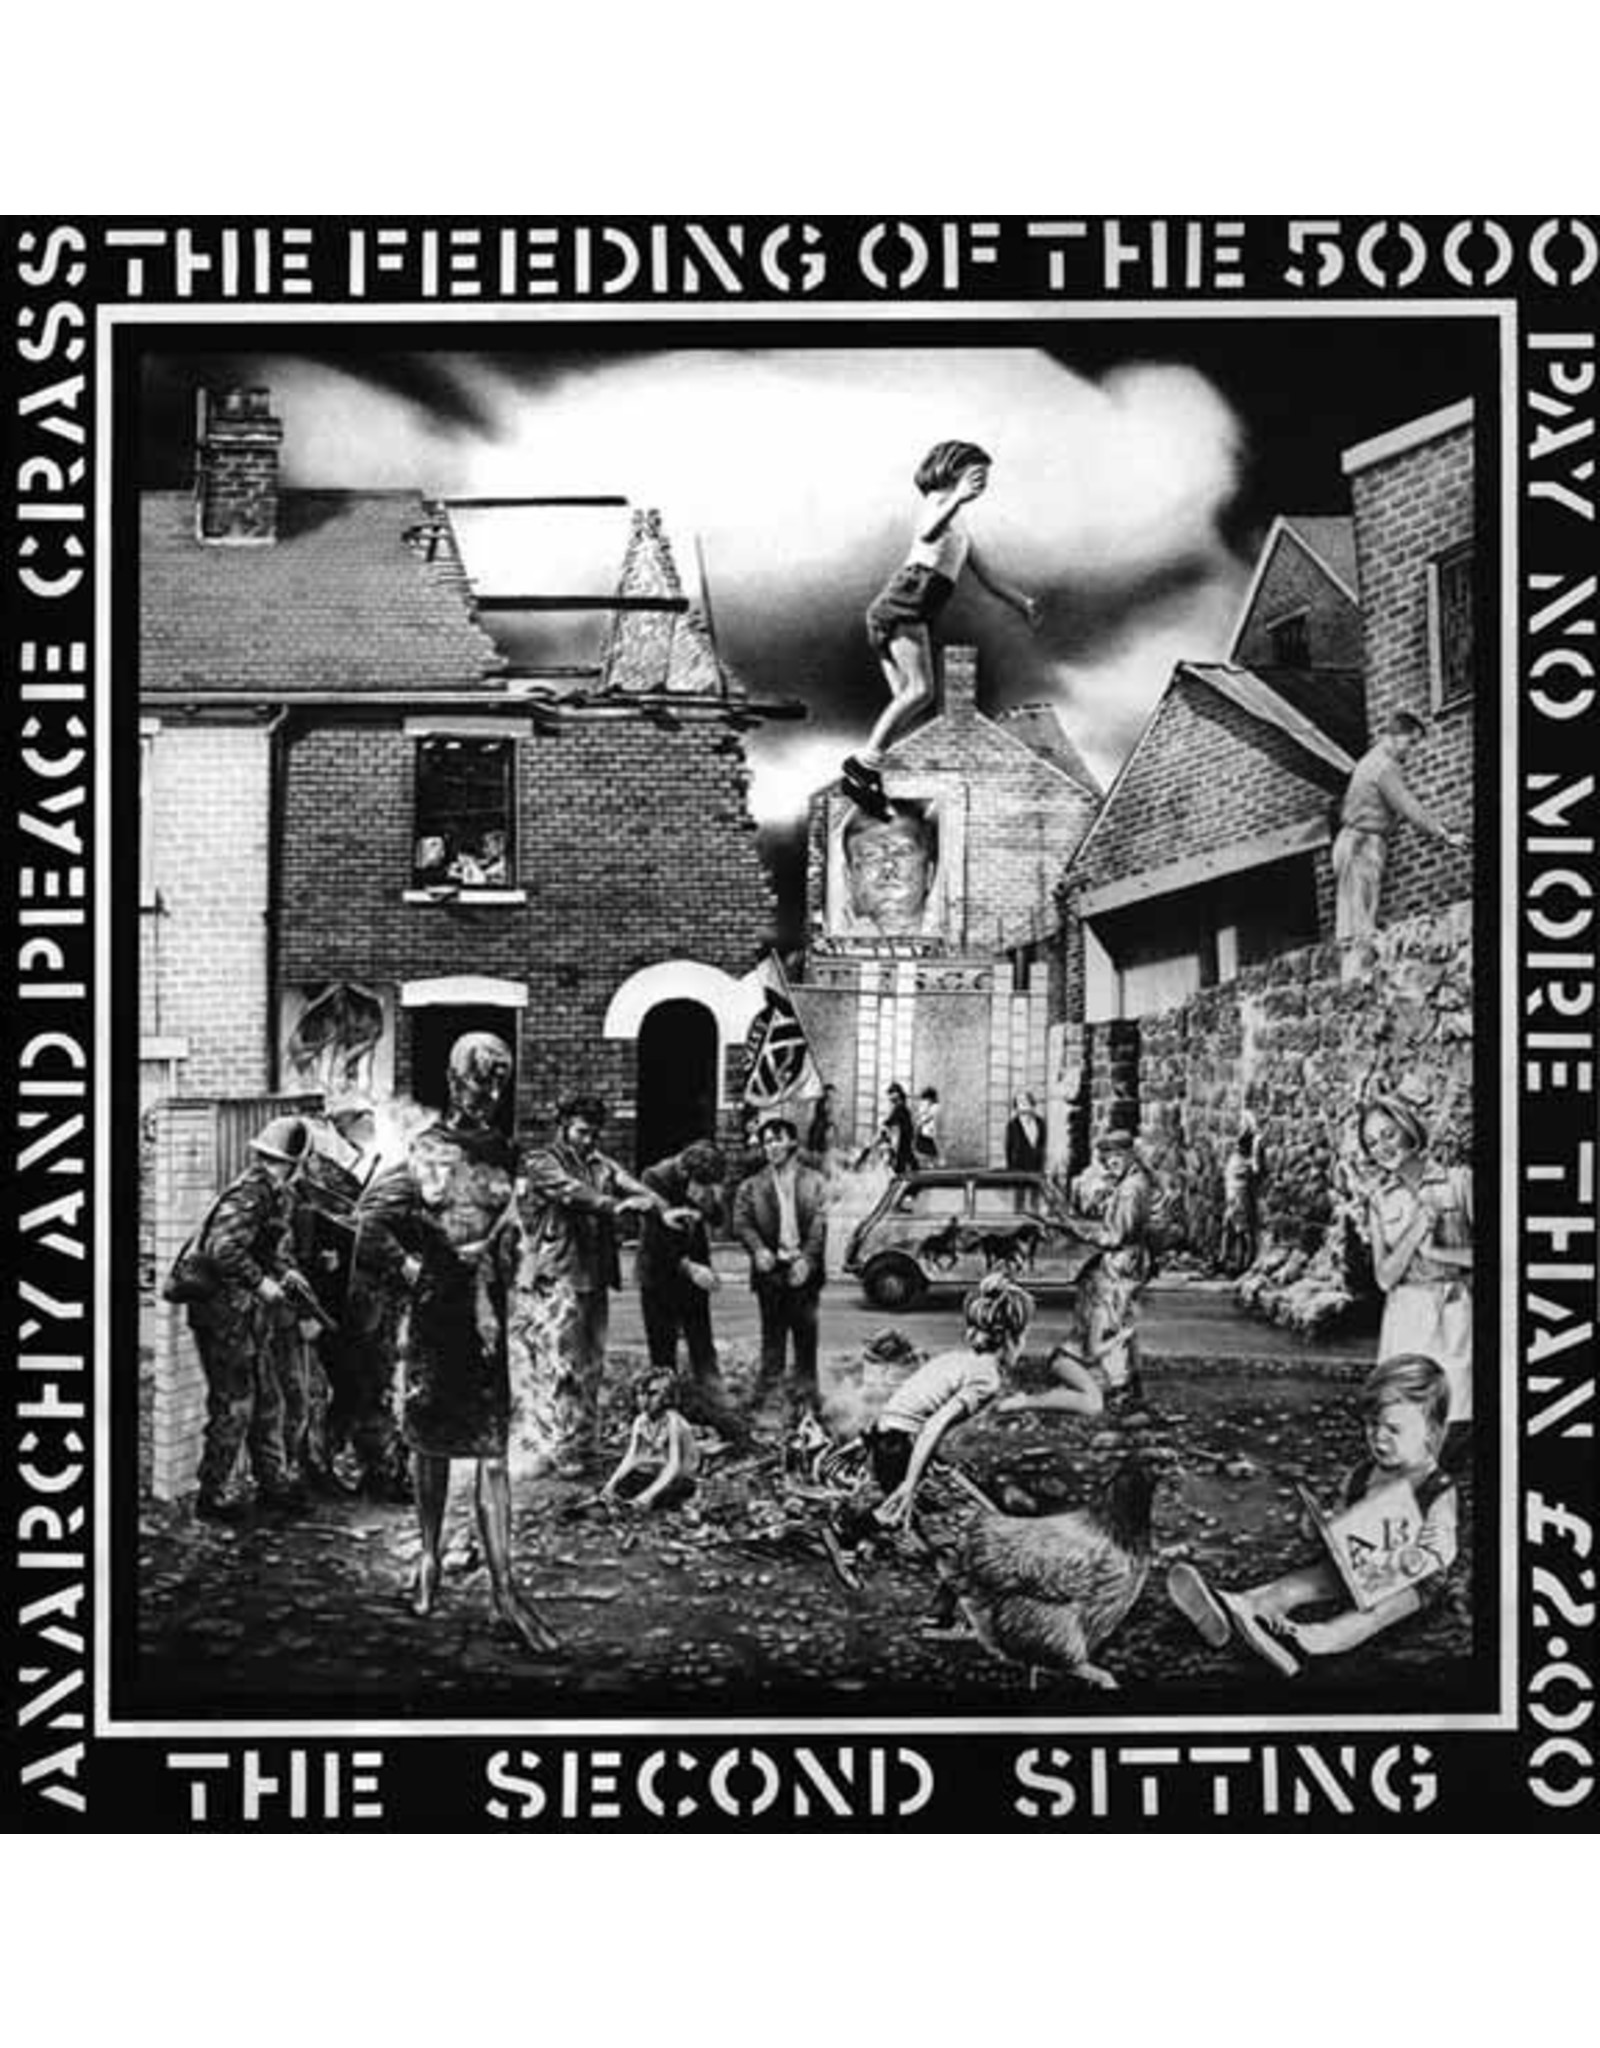 New Vinyl Crass - Feeding Of The 5,000 LP